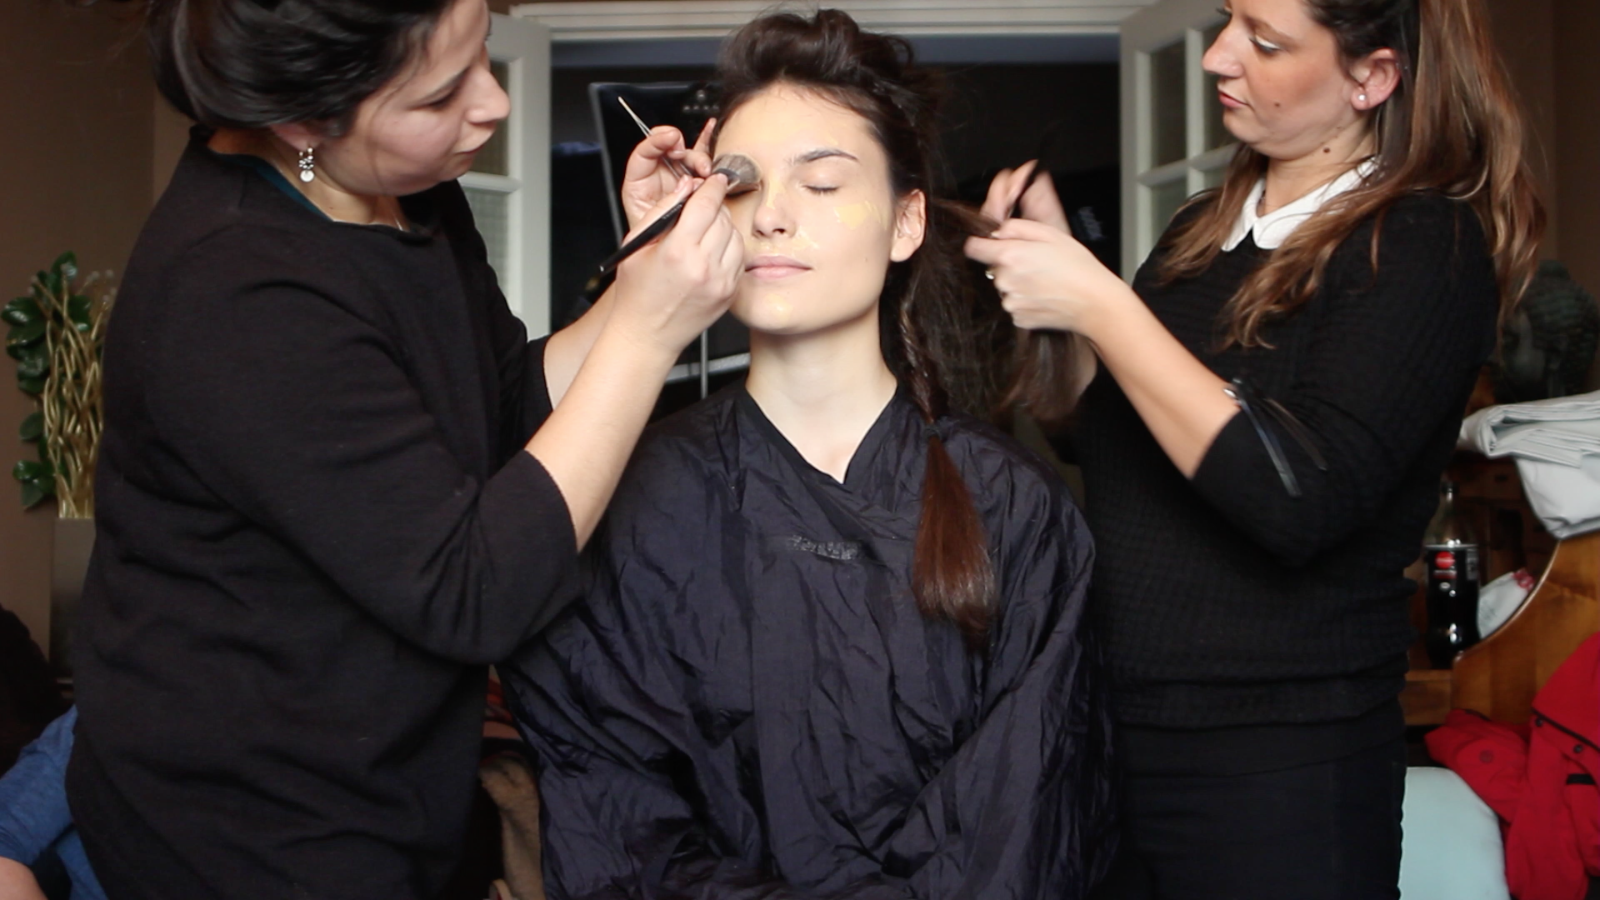 model getting pampered with hair and makeup